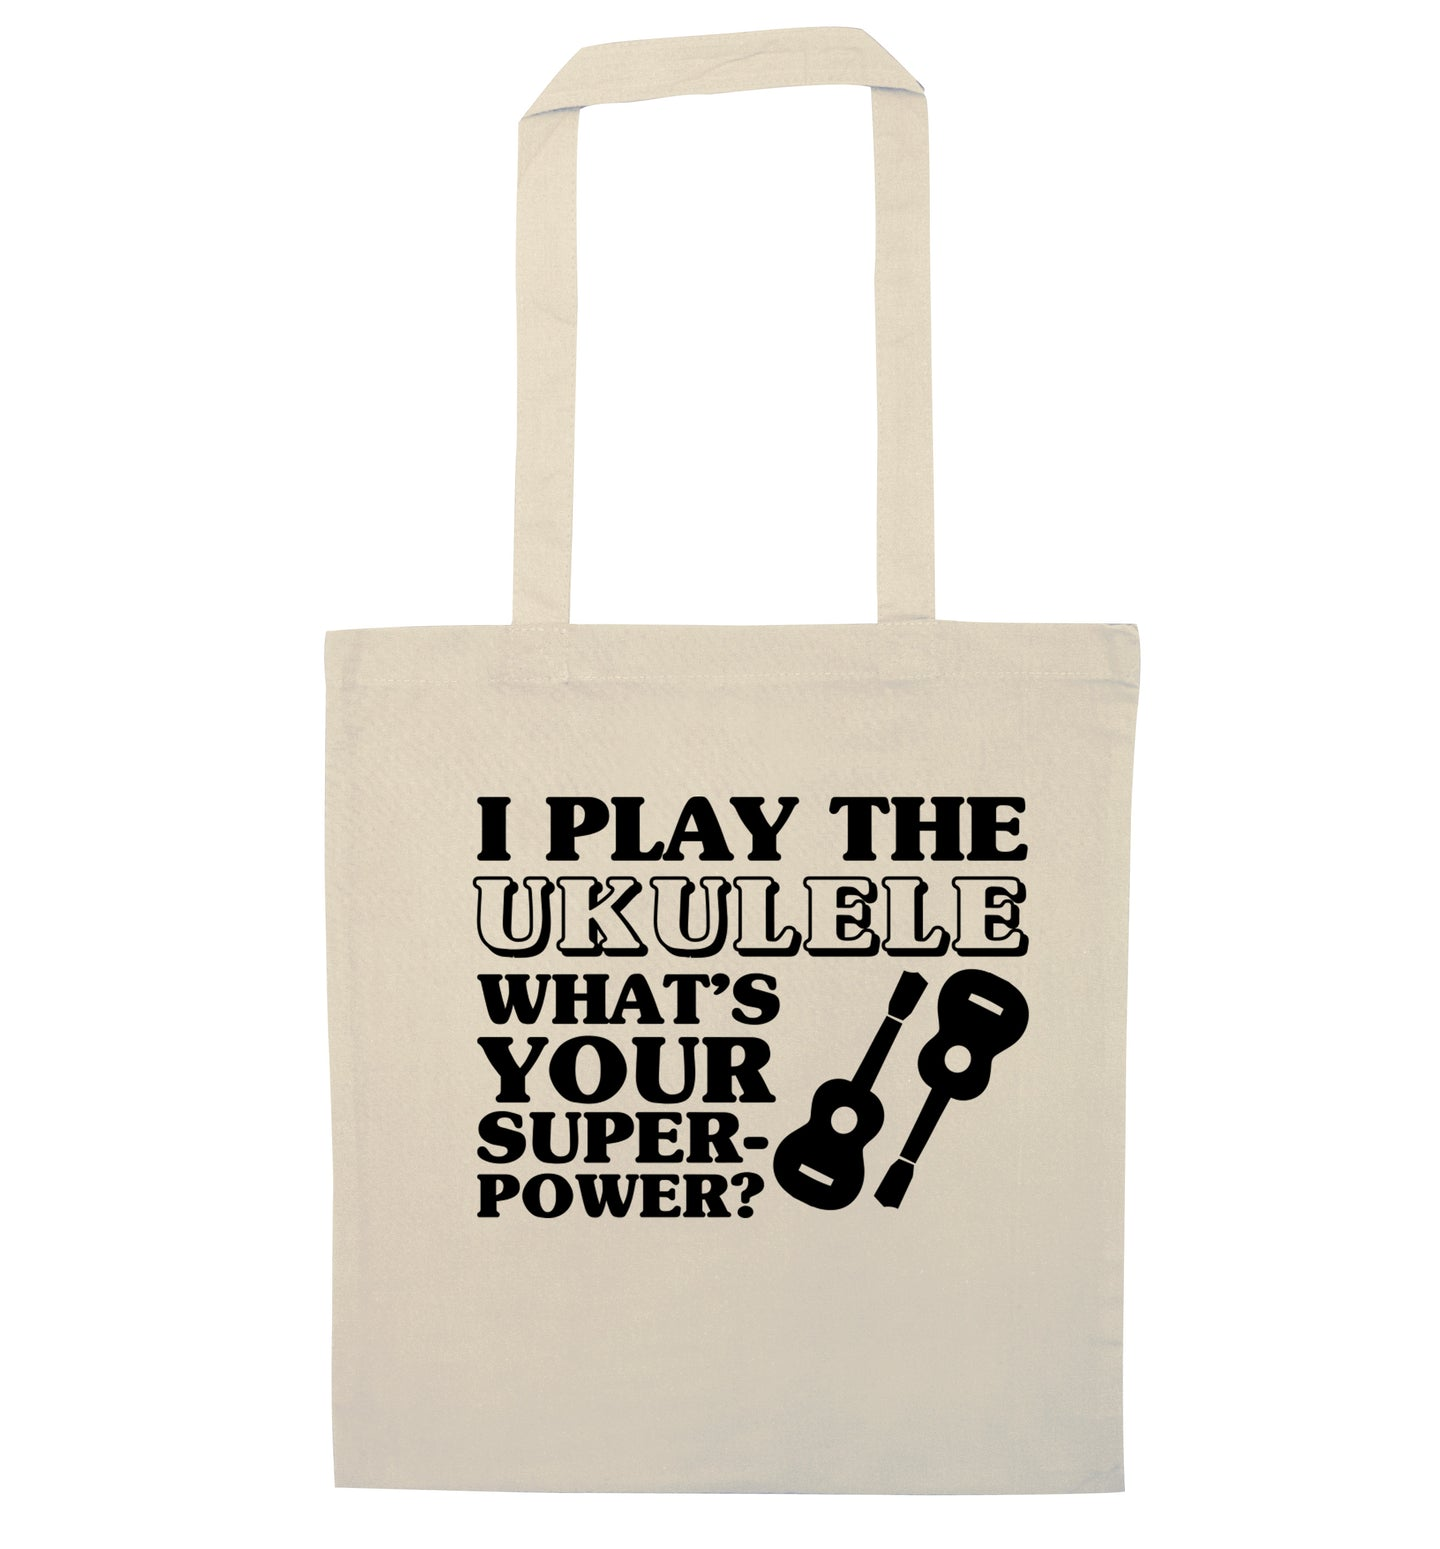 I play the ukulele what's your superpower? natural tote bag